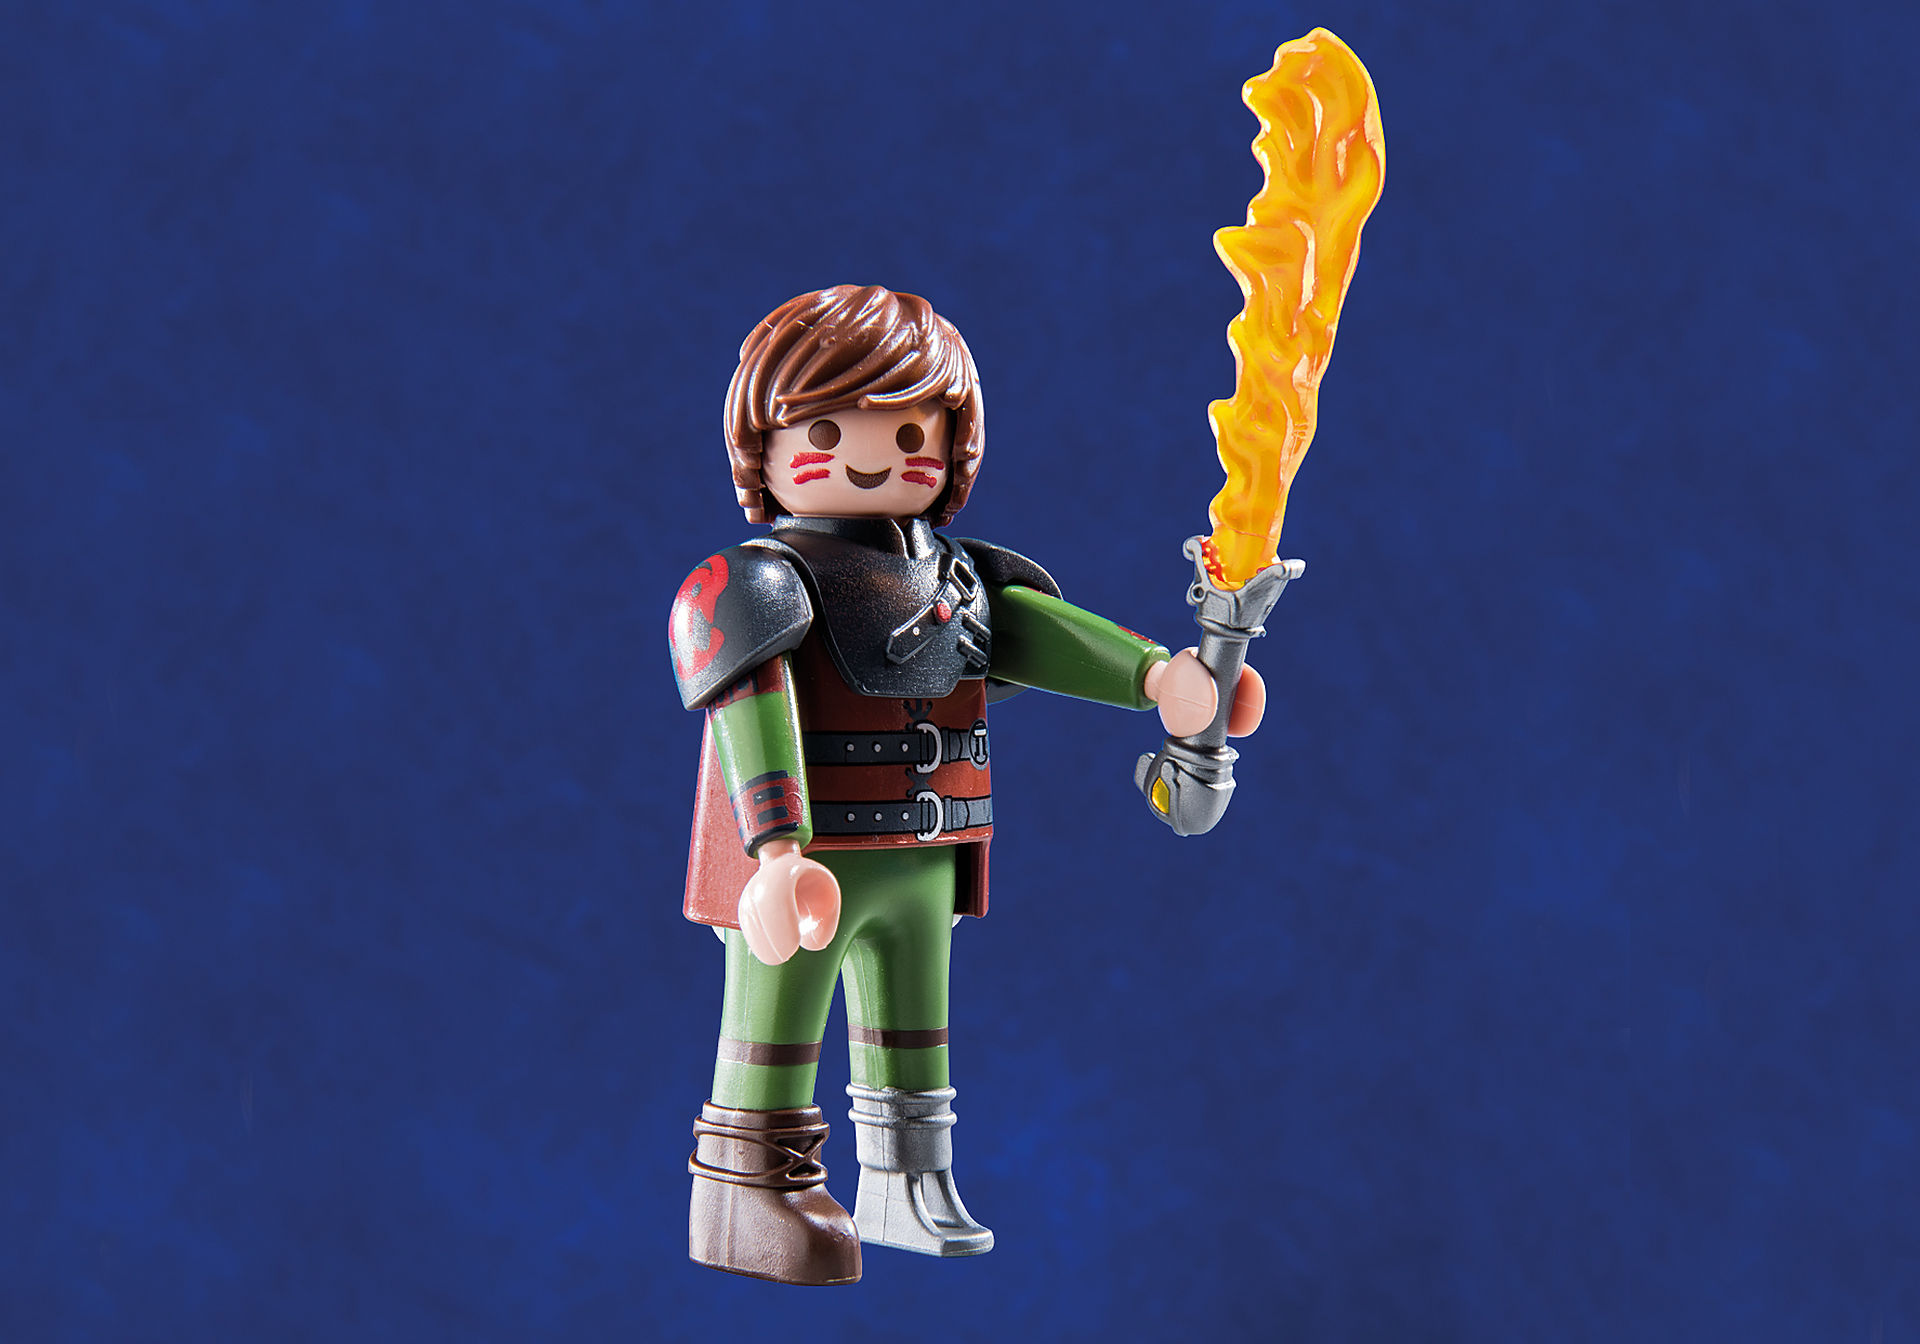 70727 Dragon Racing: Hiccup and Toothless zoom image7